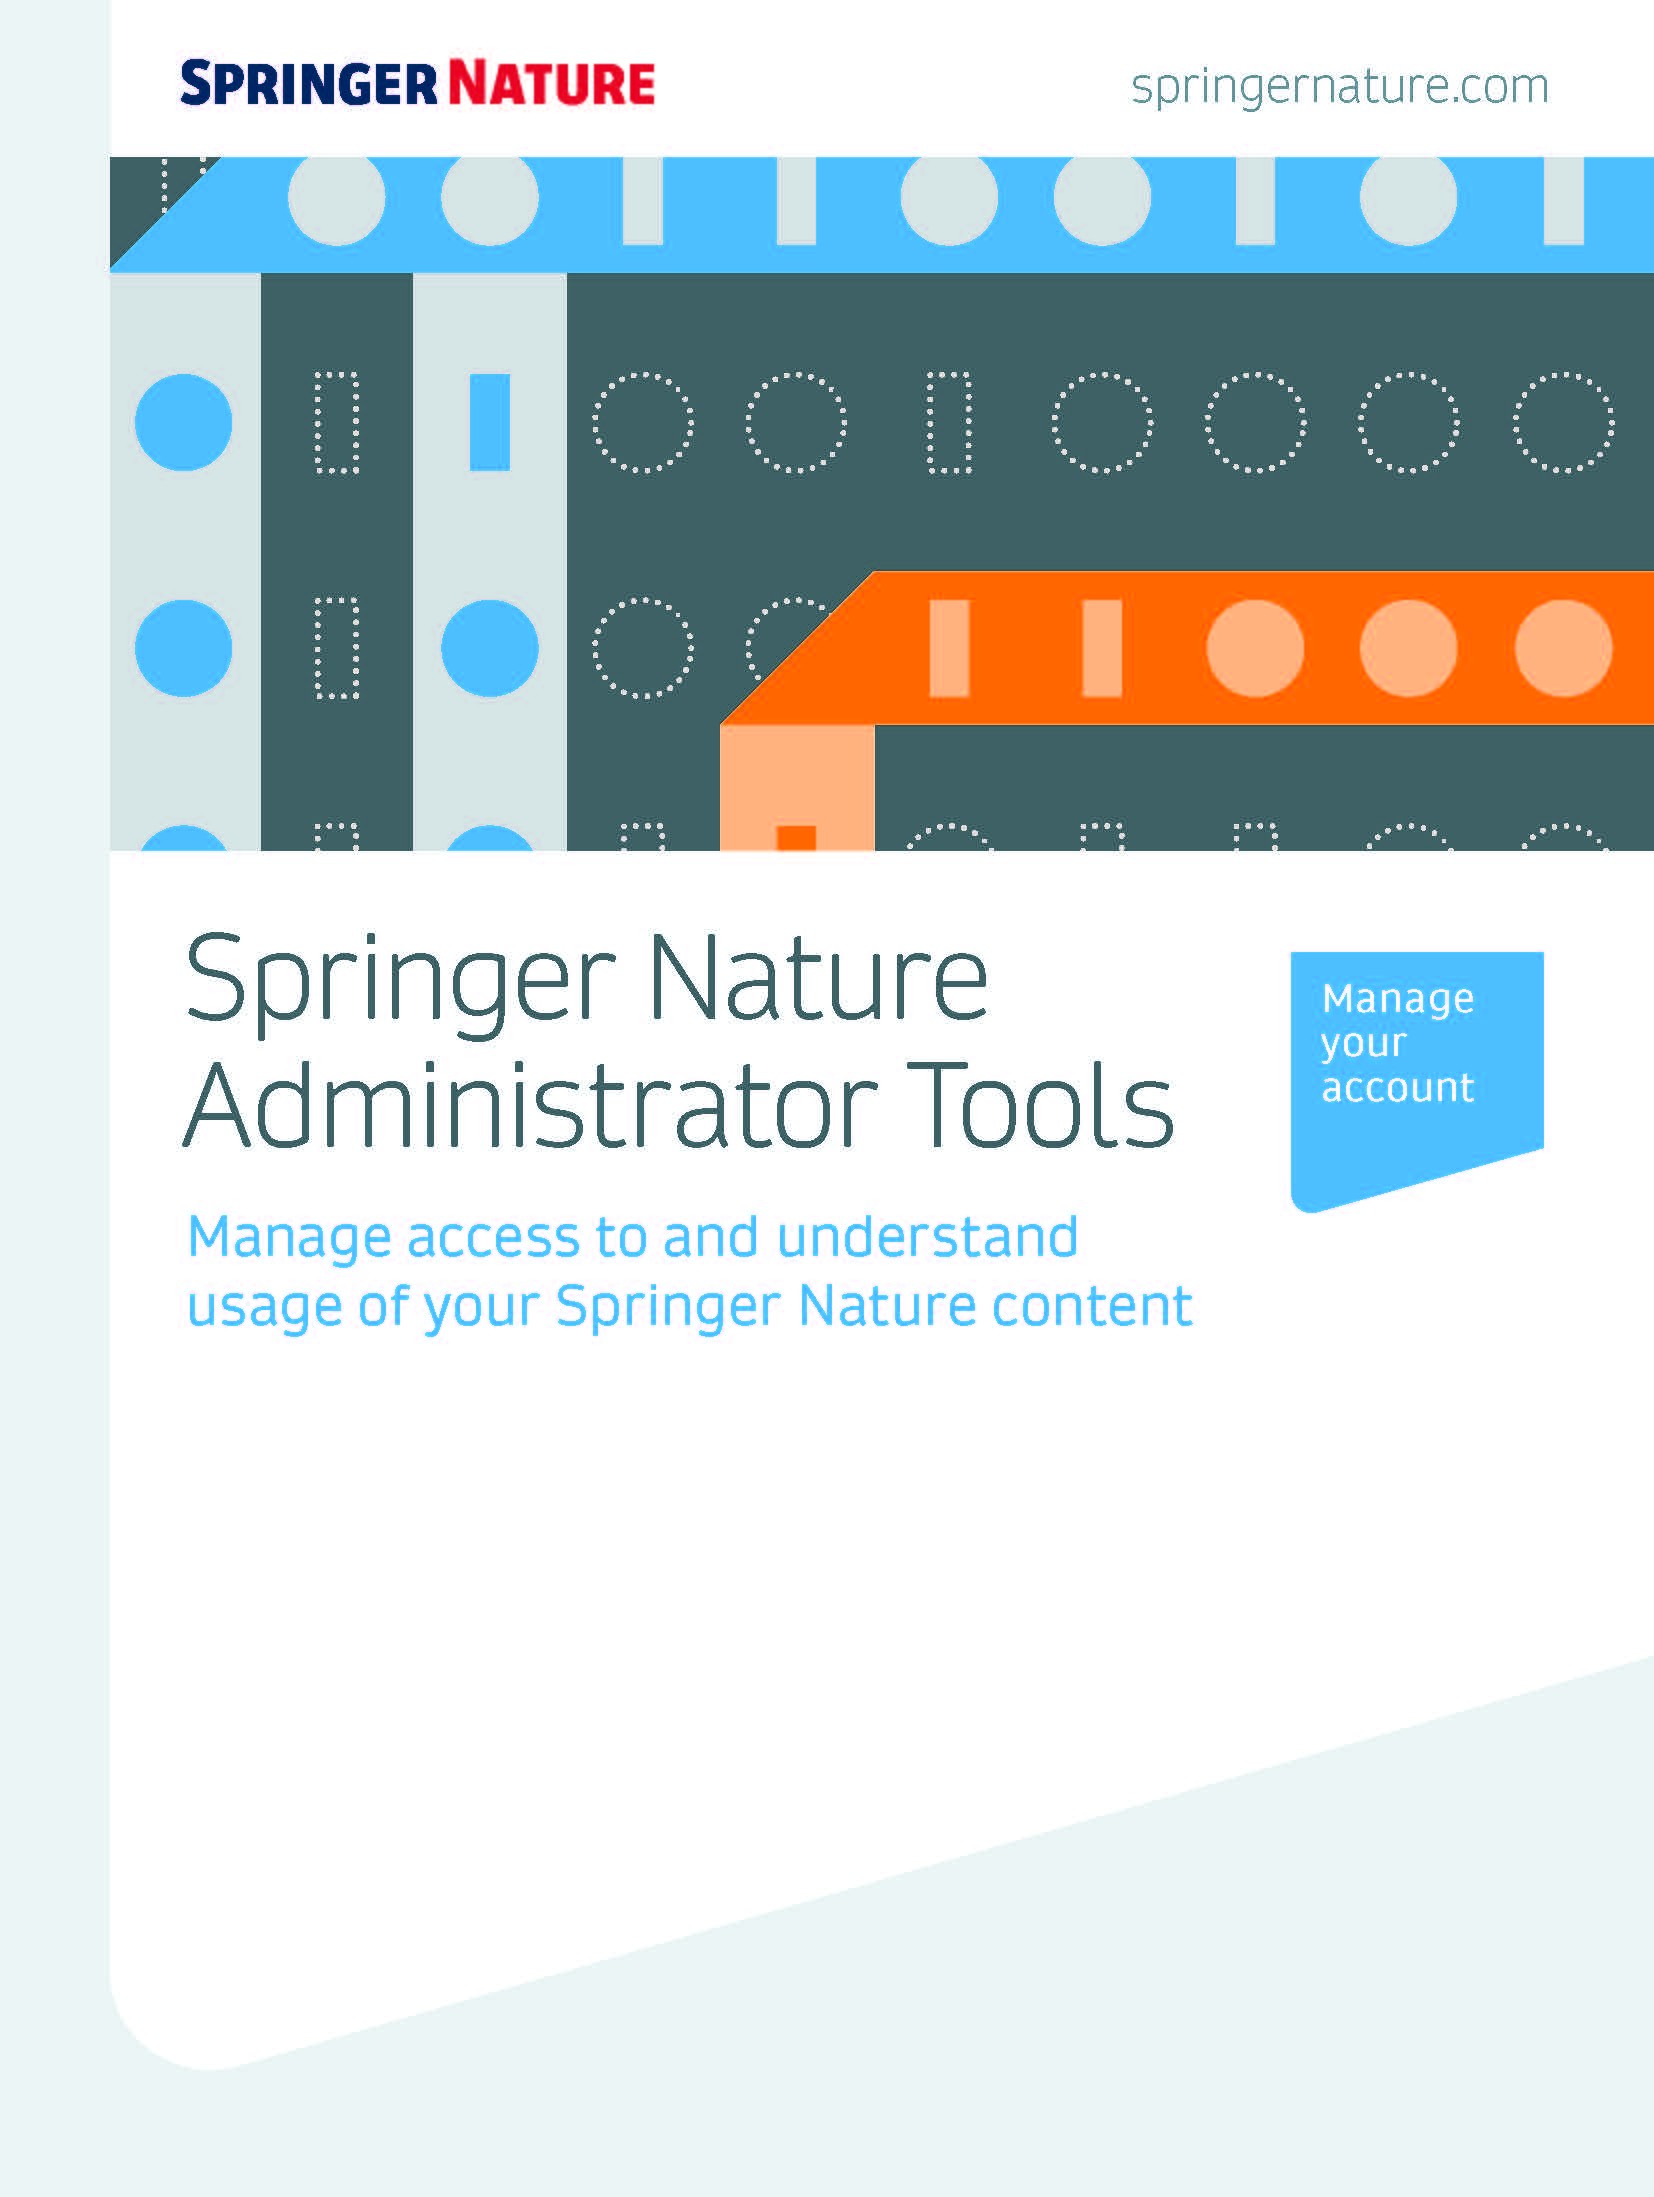 Springer Nature Adminstrator Tools Guide